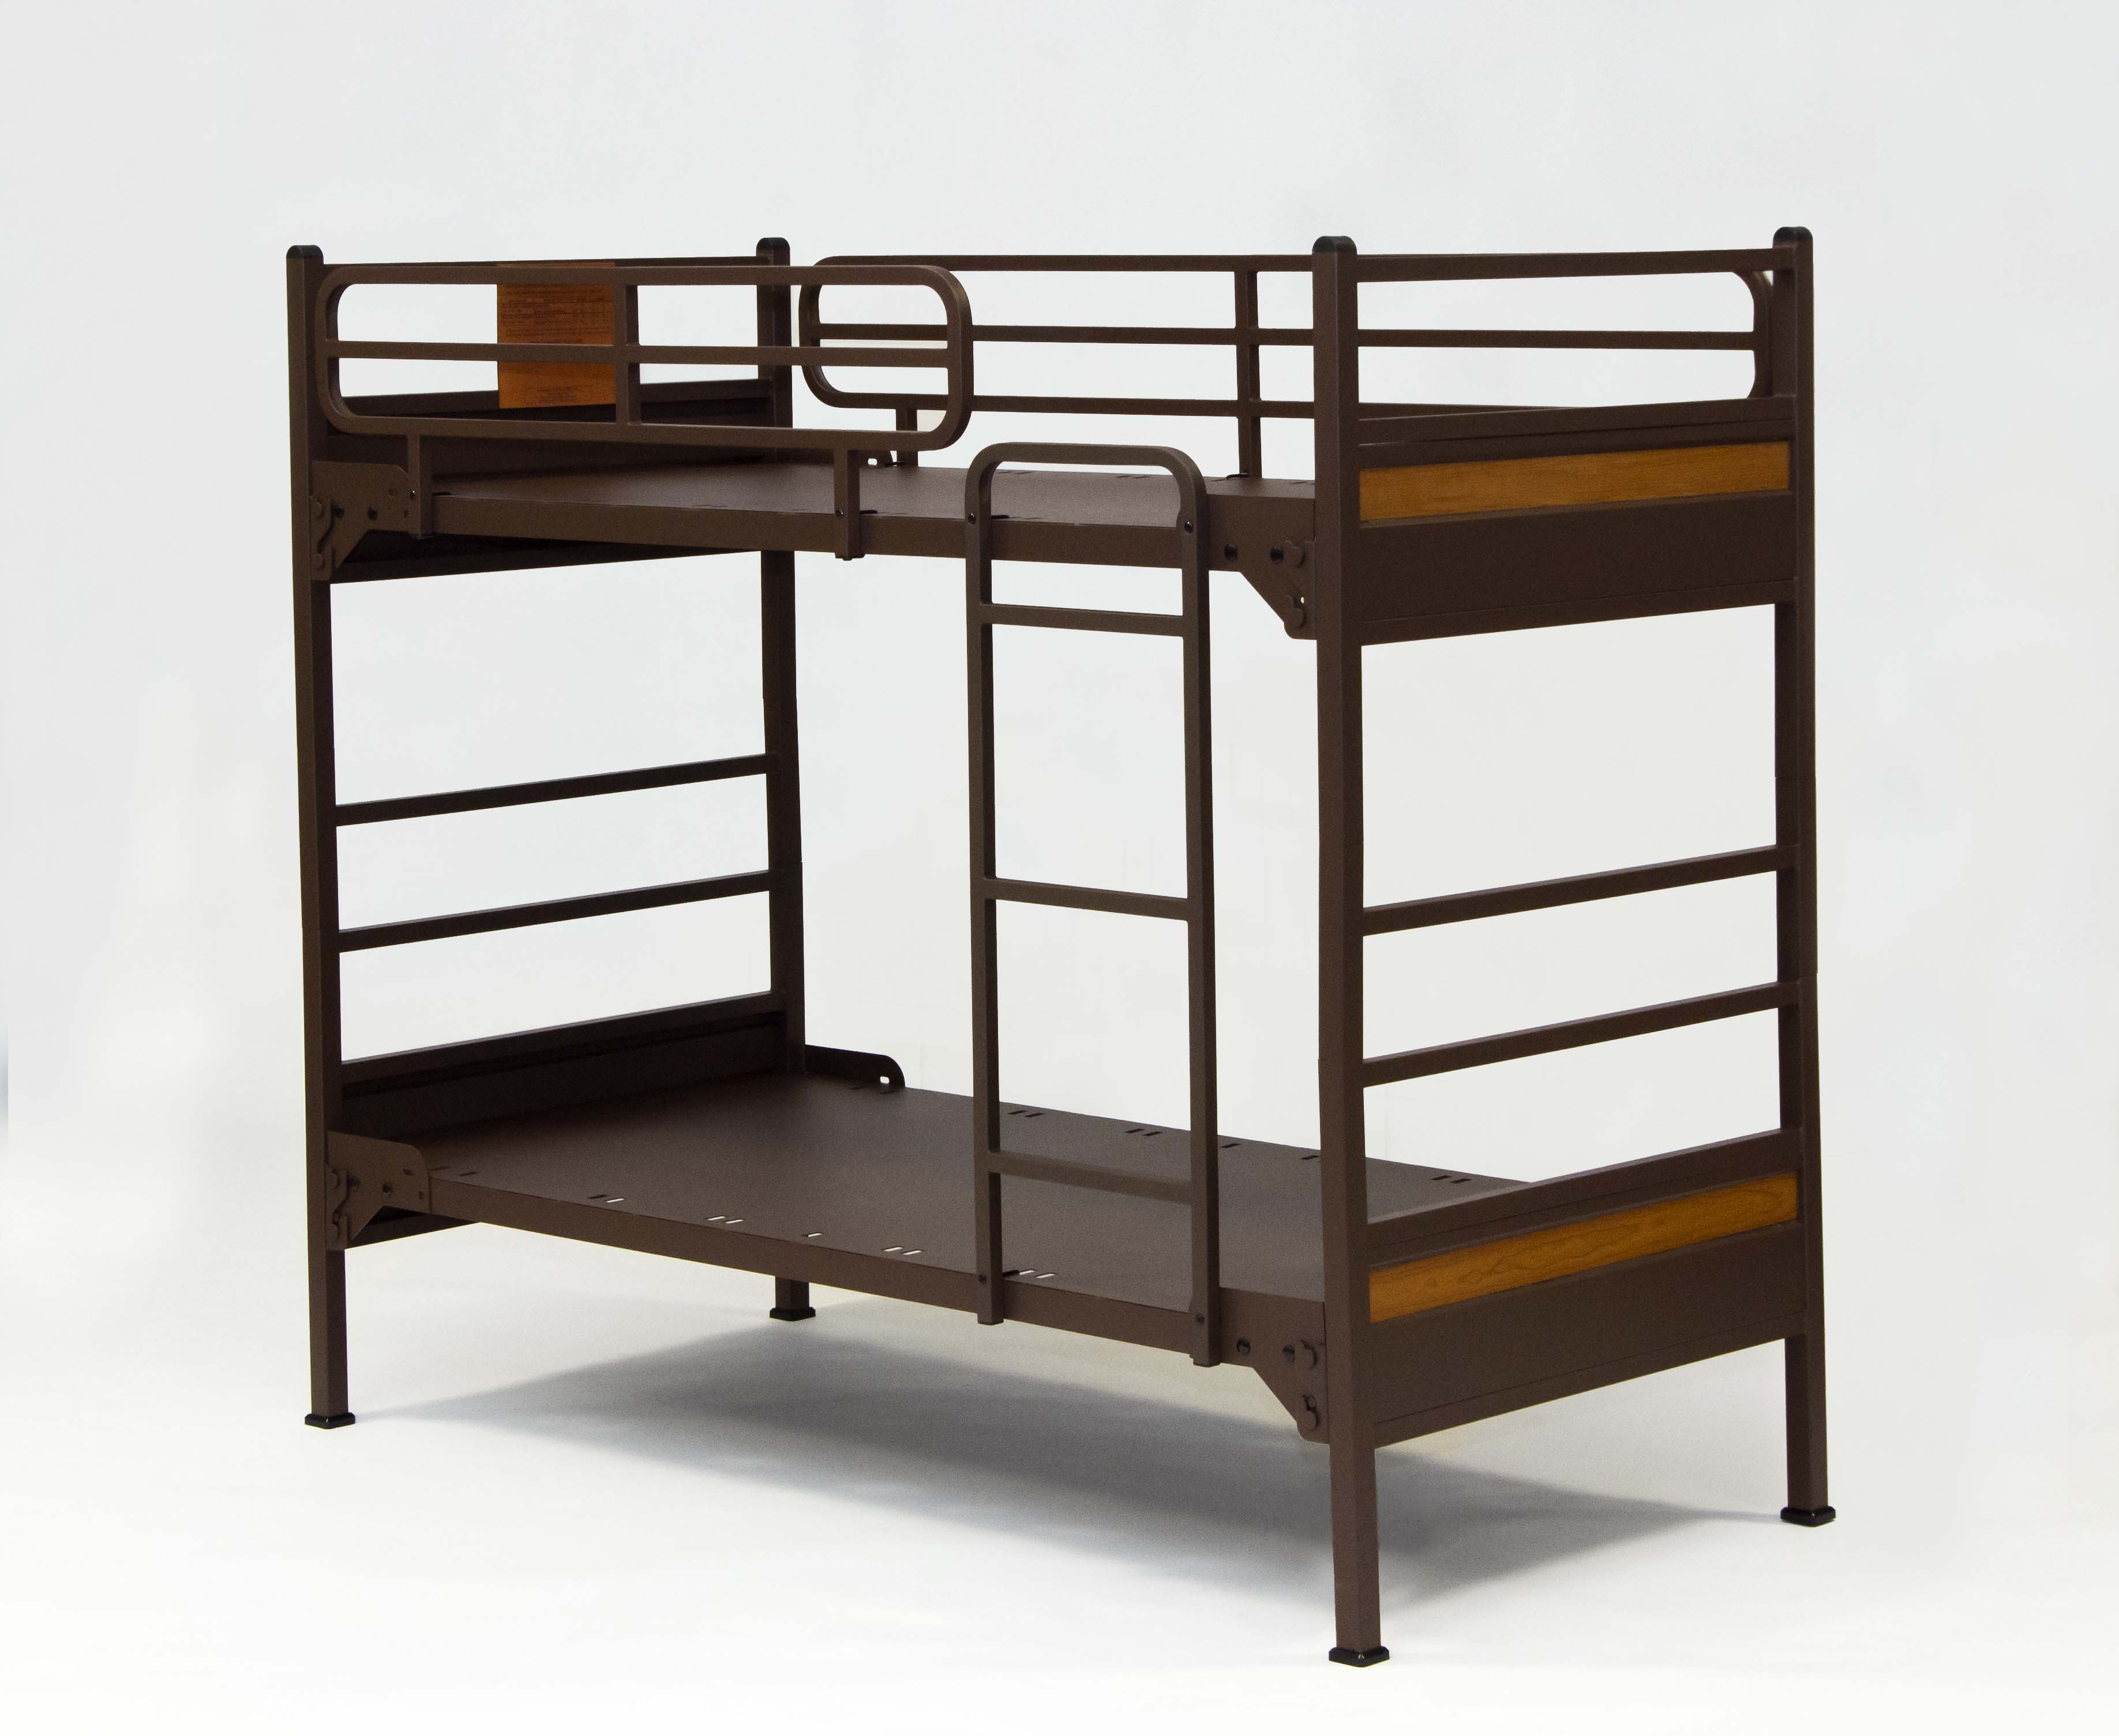 Most Commonly Asked Questions About Metal Bunk Beds